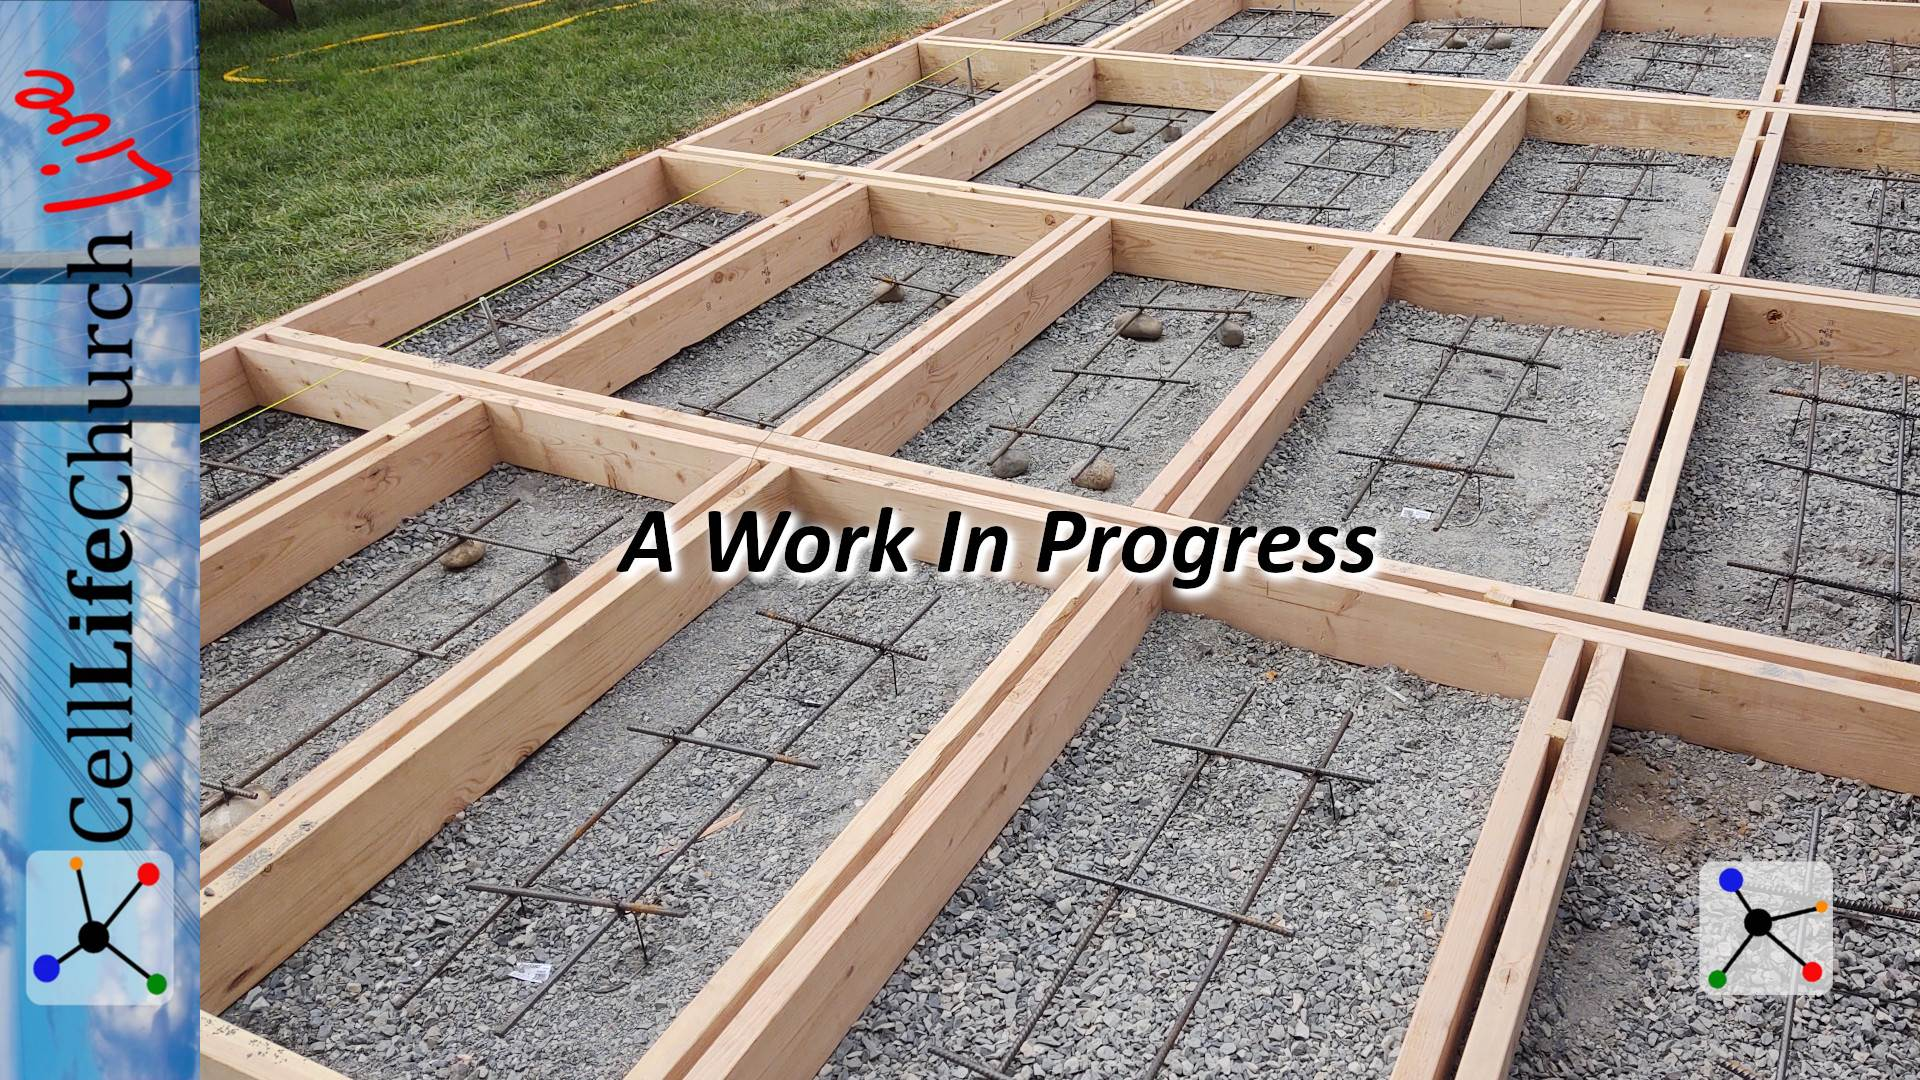 Concrete forms with steel reinforcement bars in a work in progress